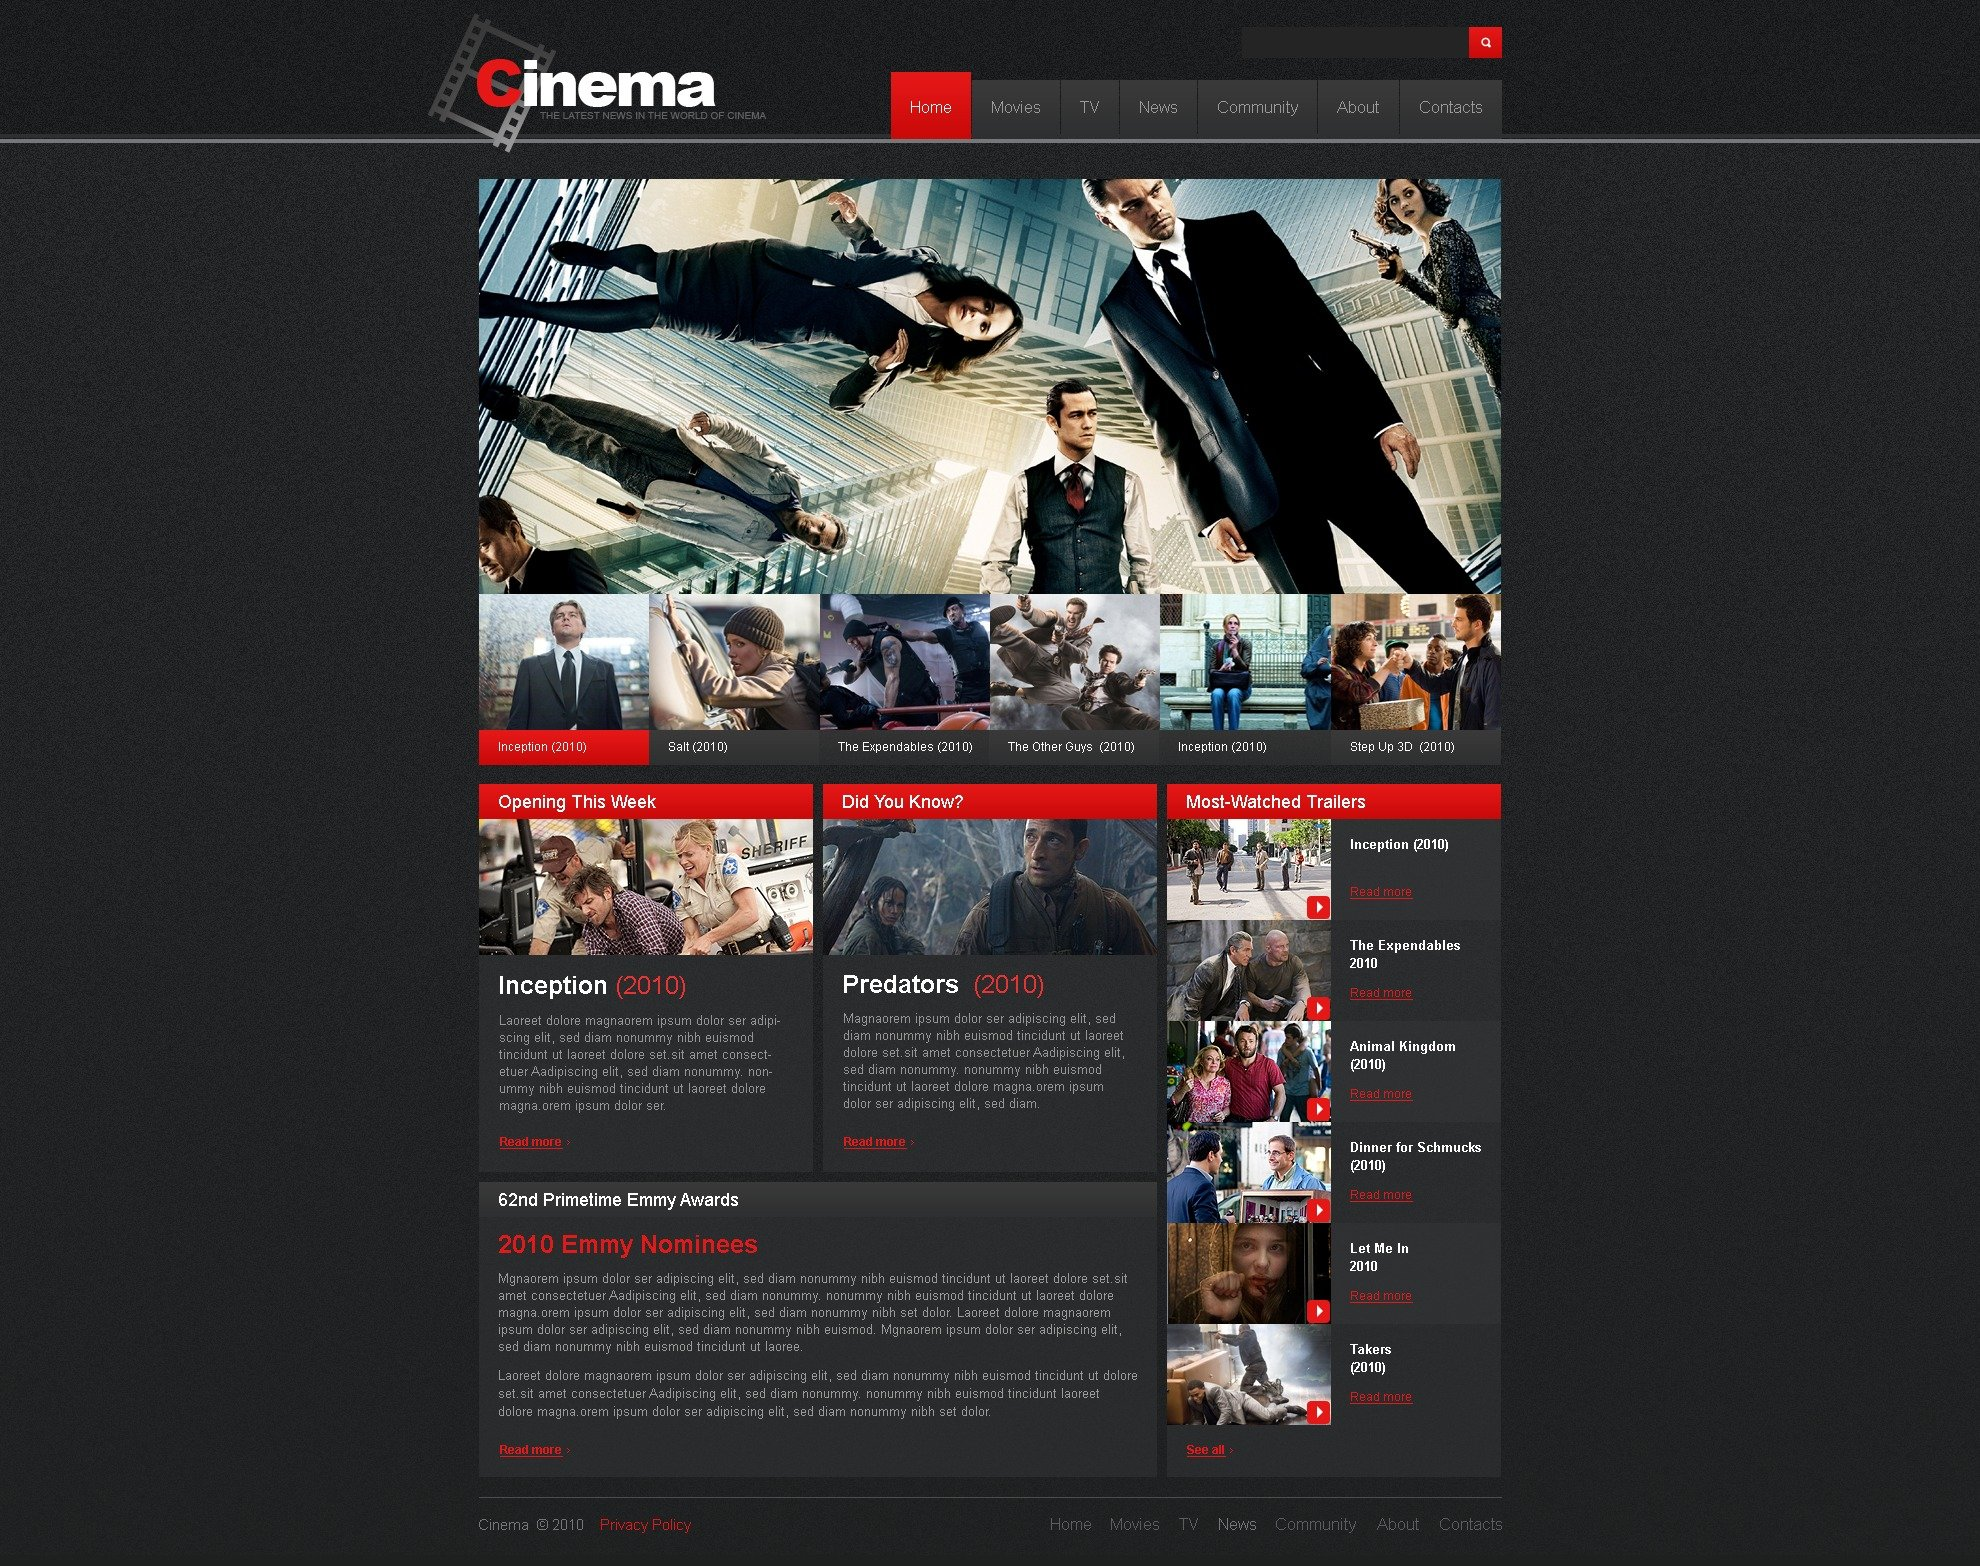 The Cinema Videox PSD Design 54291, one of the best PSD templates of its kind (portal, entertainment, most popular, wide, jquery), also known as cinema videox PSD template, video PSD template, movie PSD template, film PSD template, rate blog PSD template, videos PSD template, view PSD template, download PSD template, rating PSD template, comments PSD template, movies and related with cinema videox, video, movie, film, rate blog, videos, view, download, rating, comments, movies, etc.